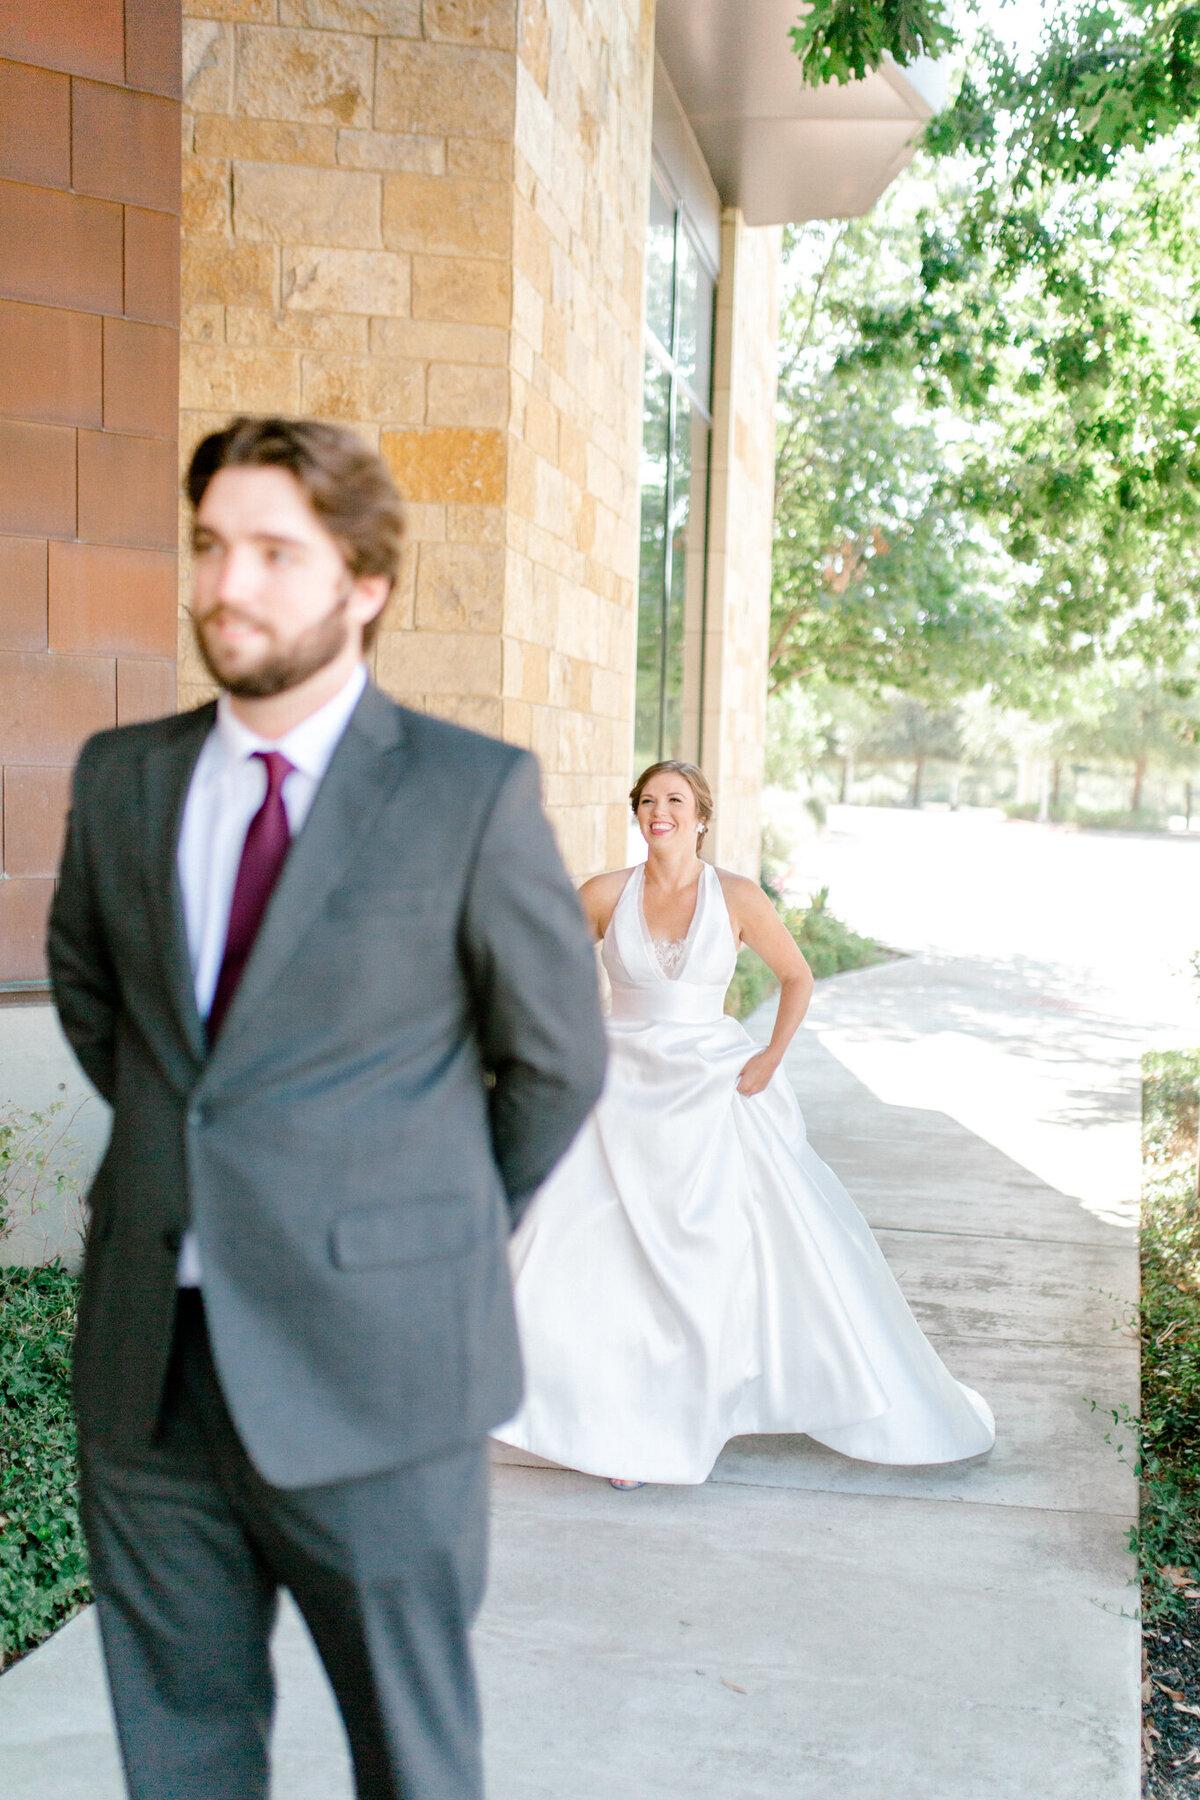 Kaylee & Michael's Wedding at Watermark Community Church | Dallas Wedding Photographer | Sami Kathryn Photography-37